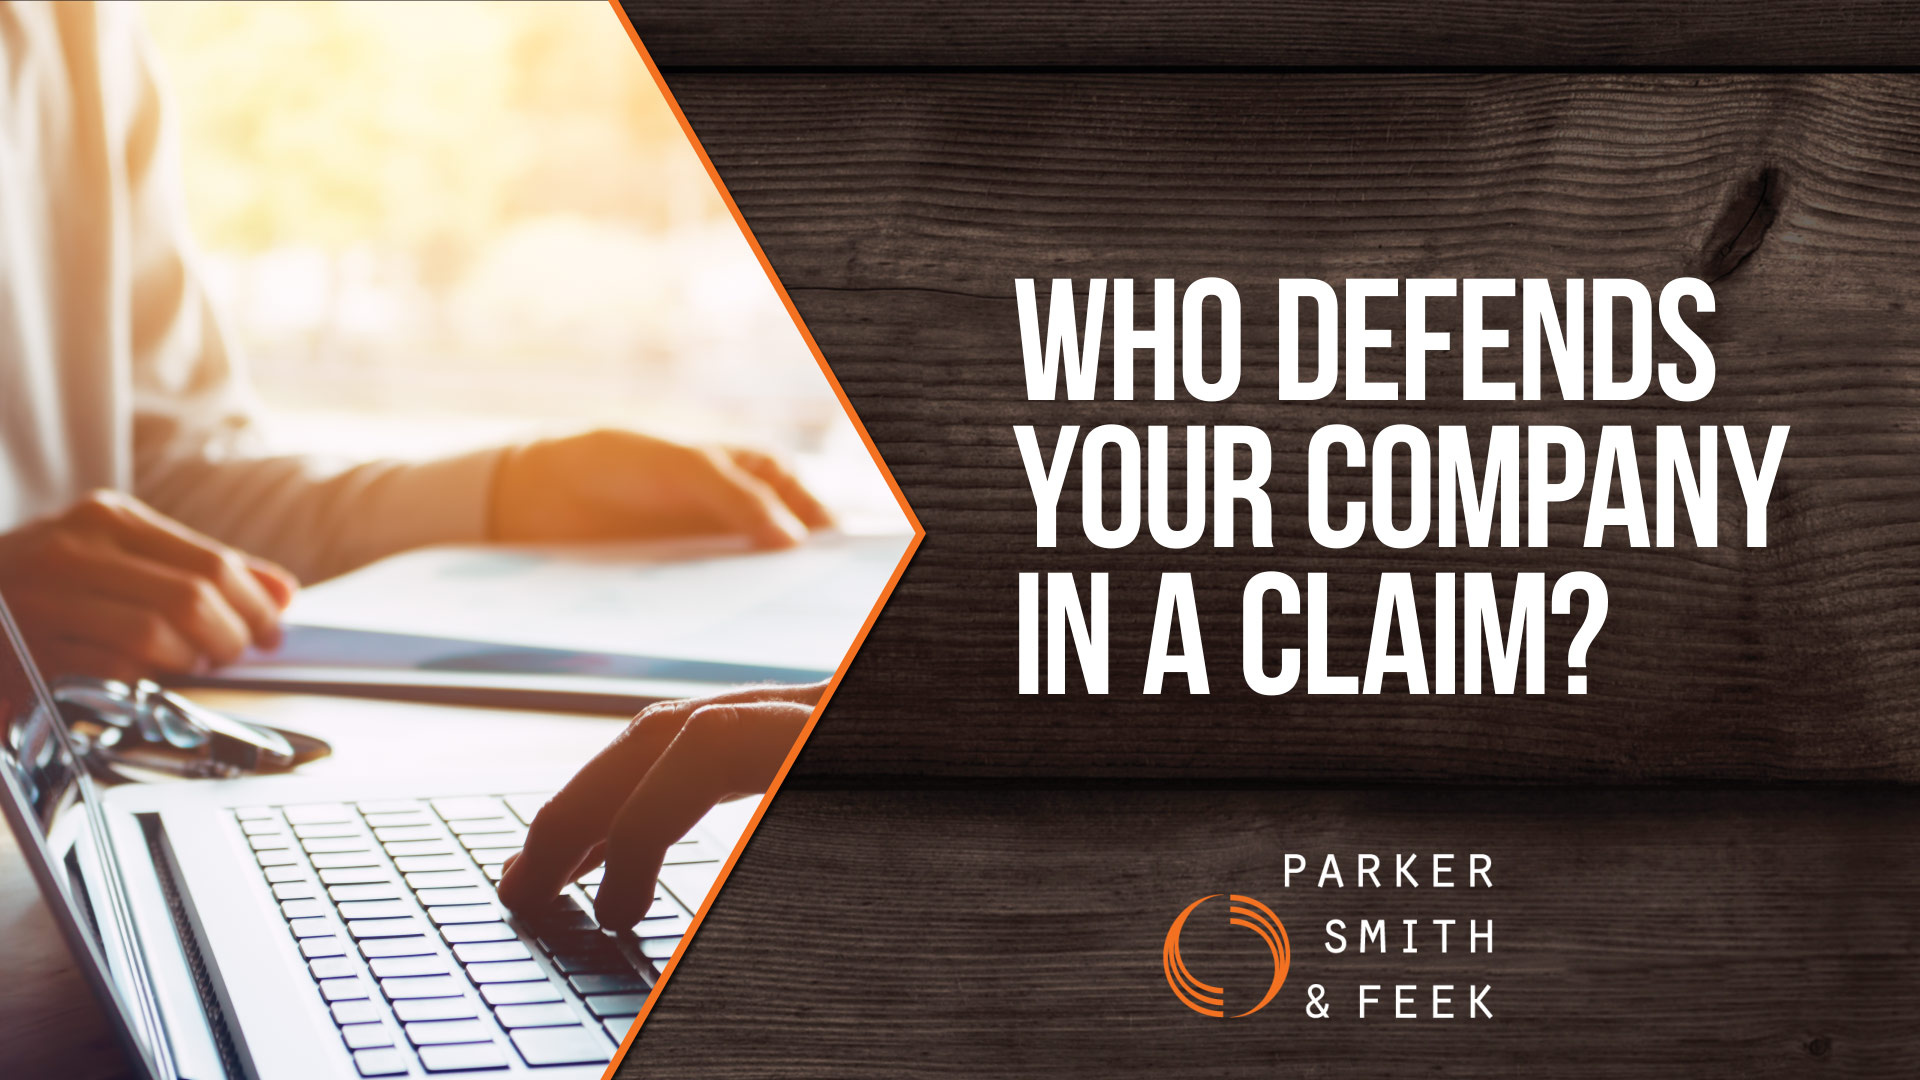 If you are responsible for navigating claims for your organization, do you know which law firm will defend your company after a claim? Employment practices liability and other management liability policies are often written on a duty to defend basis, and the carrier typically retains the right to select counsel. Watch to learn more about the pros and cons of these types of policies from Parker, Smith & Feek Vice President Michael Edmonds.